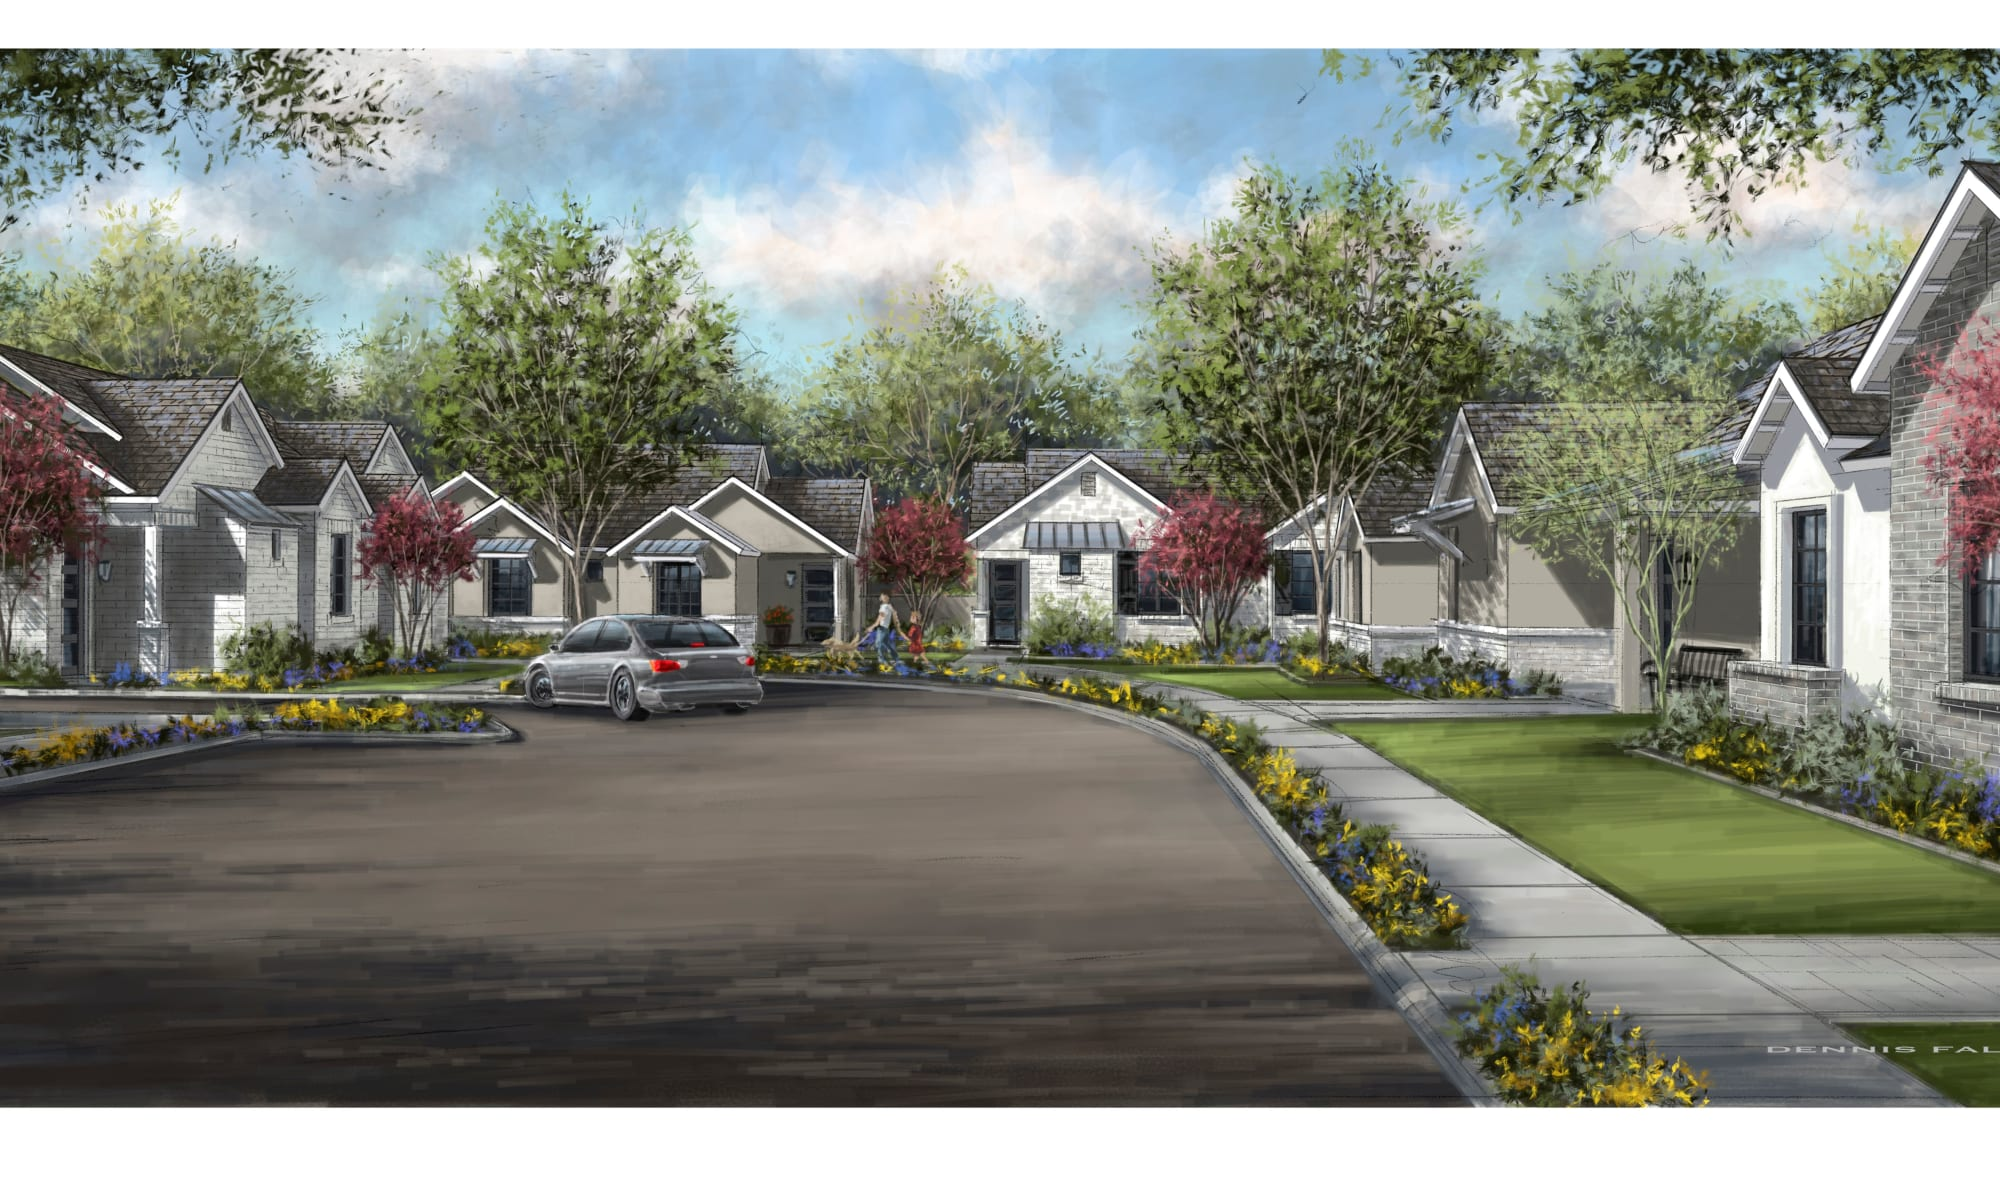 Apartments in Queen Creek, Arizona at EVR Spur Cross